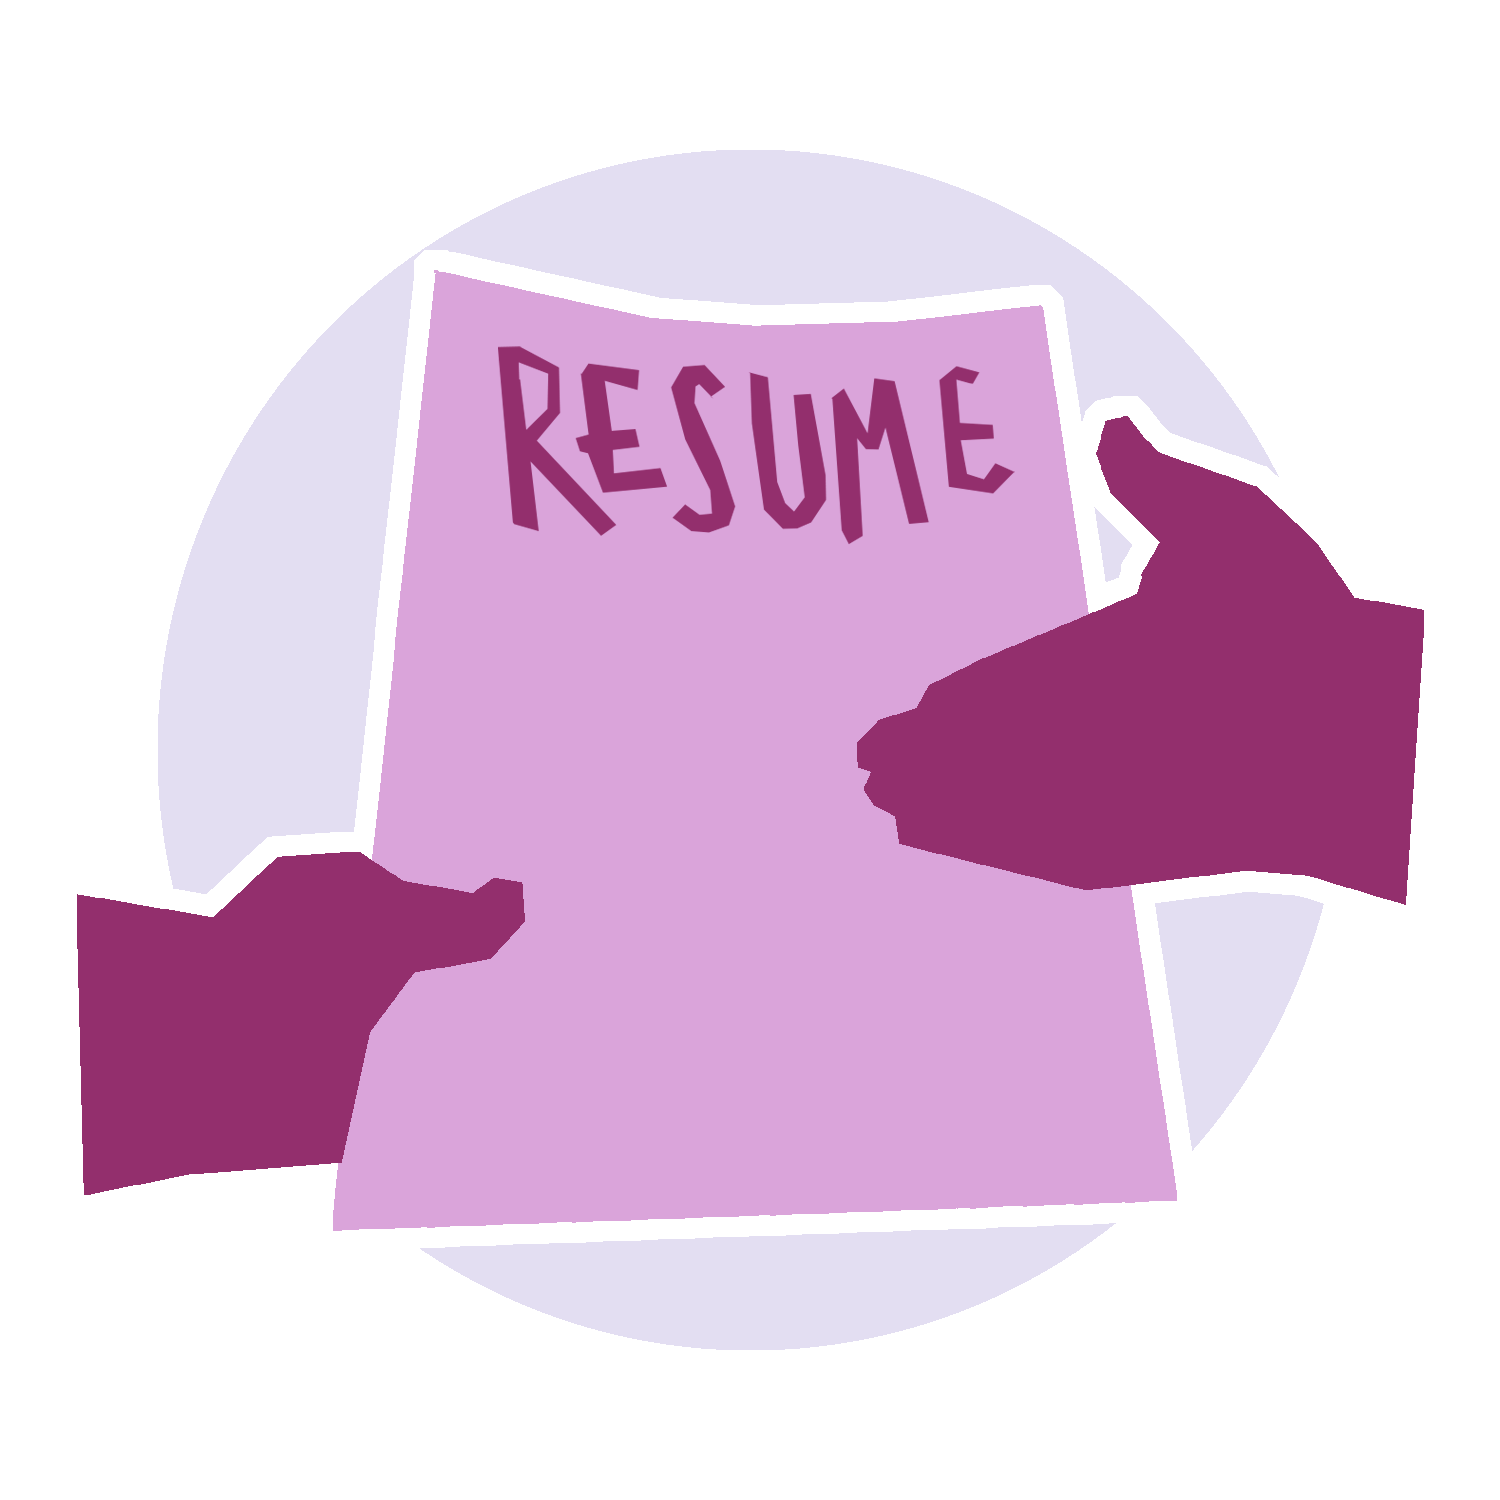 Resume2.png